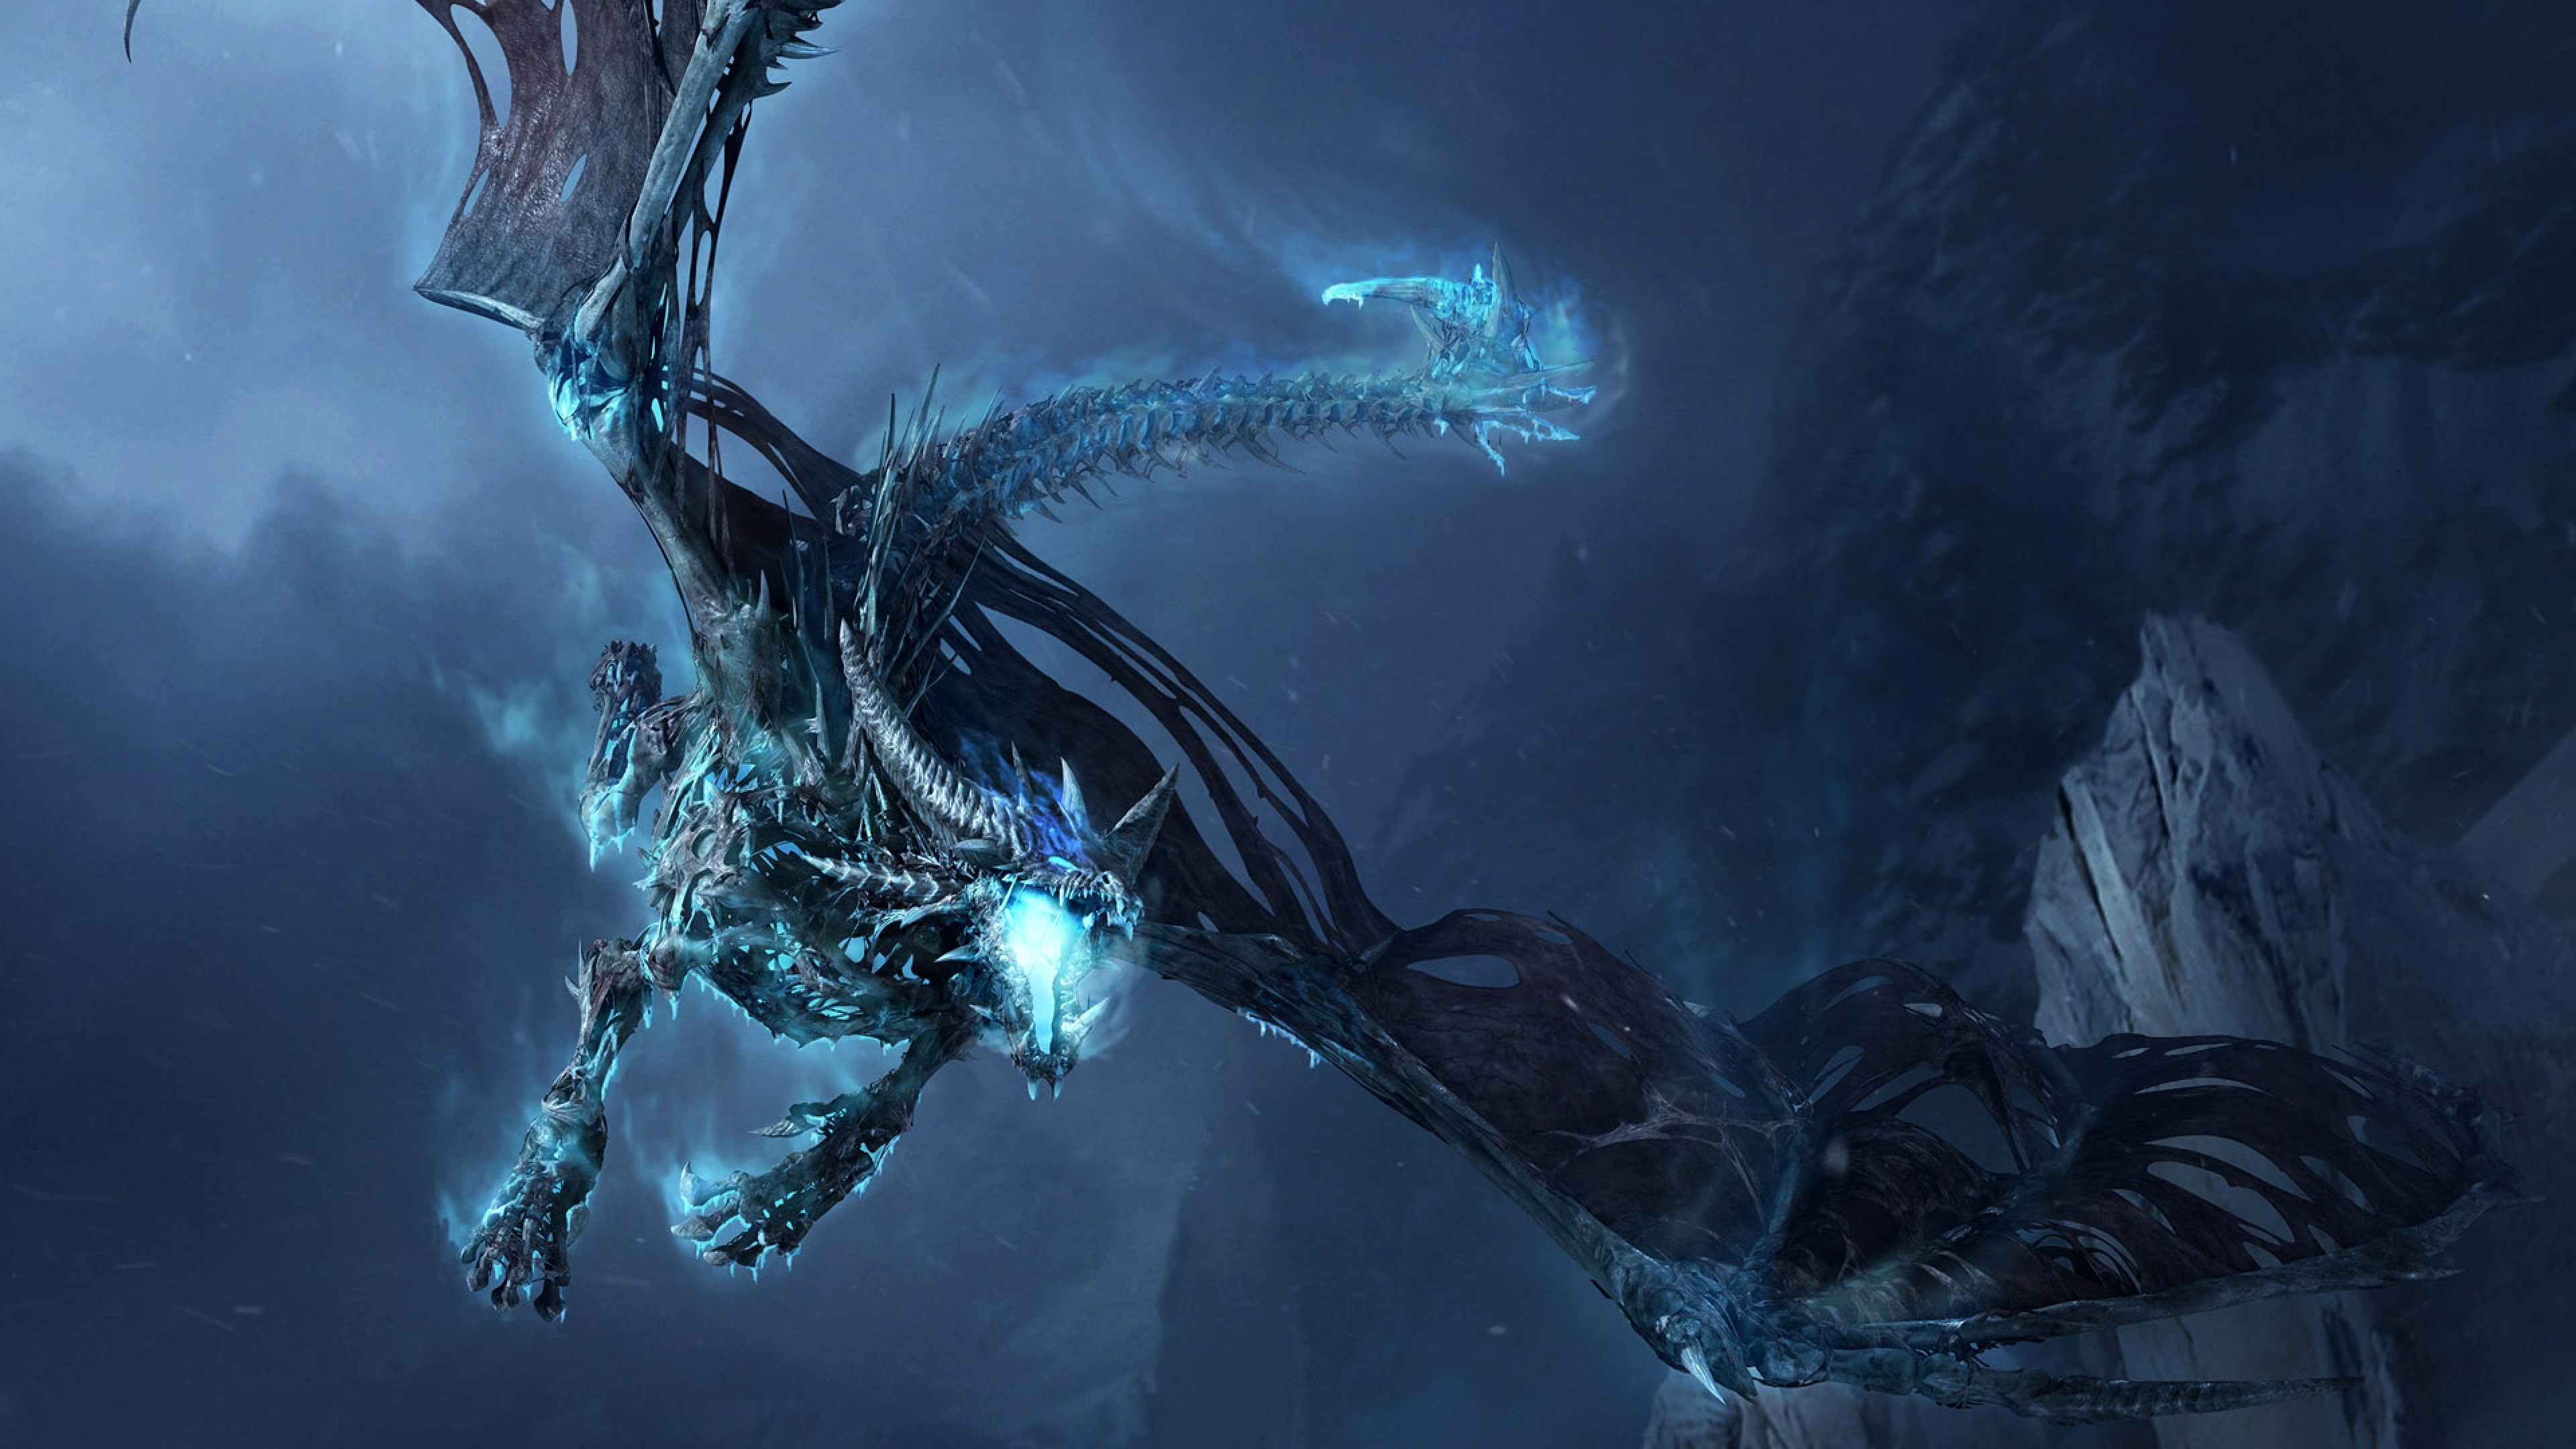 Of Warcraft Dragon Cold Mountain Wallpaper Background Blue